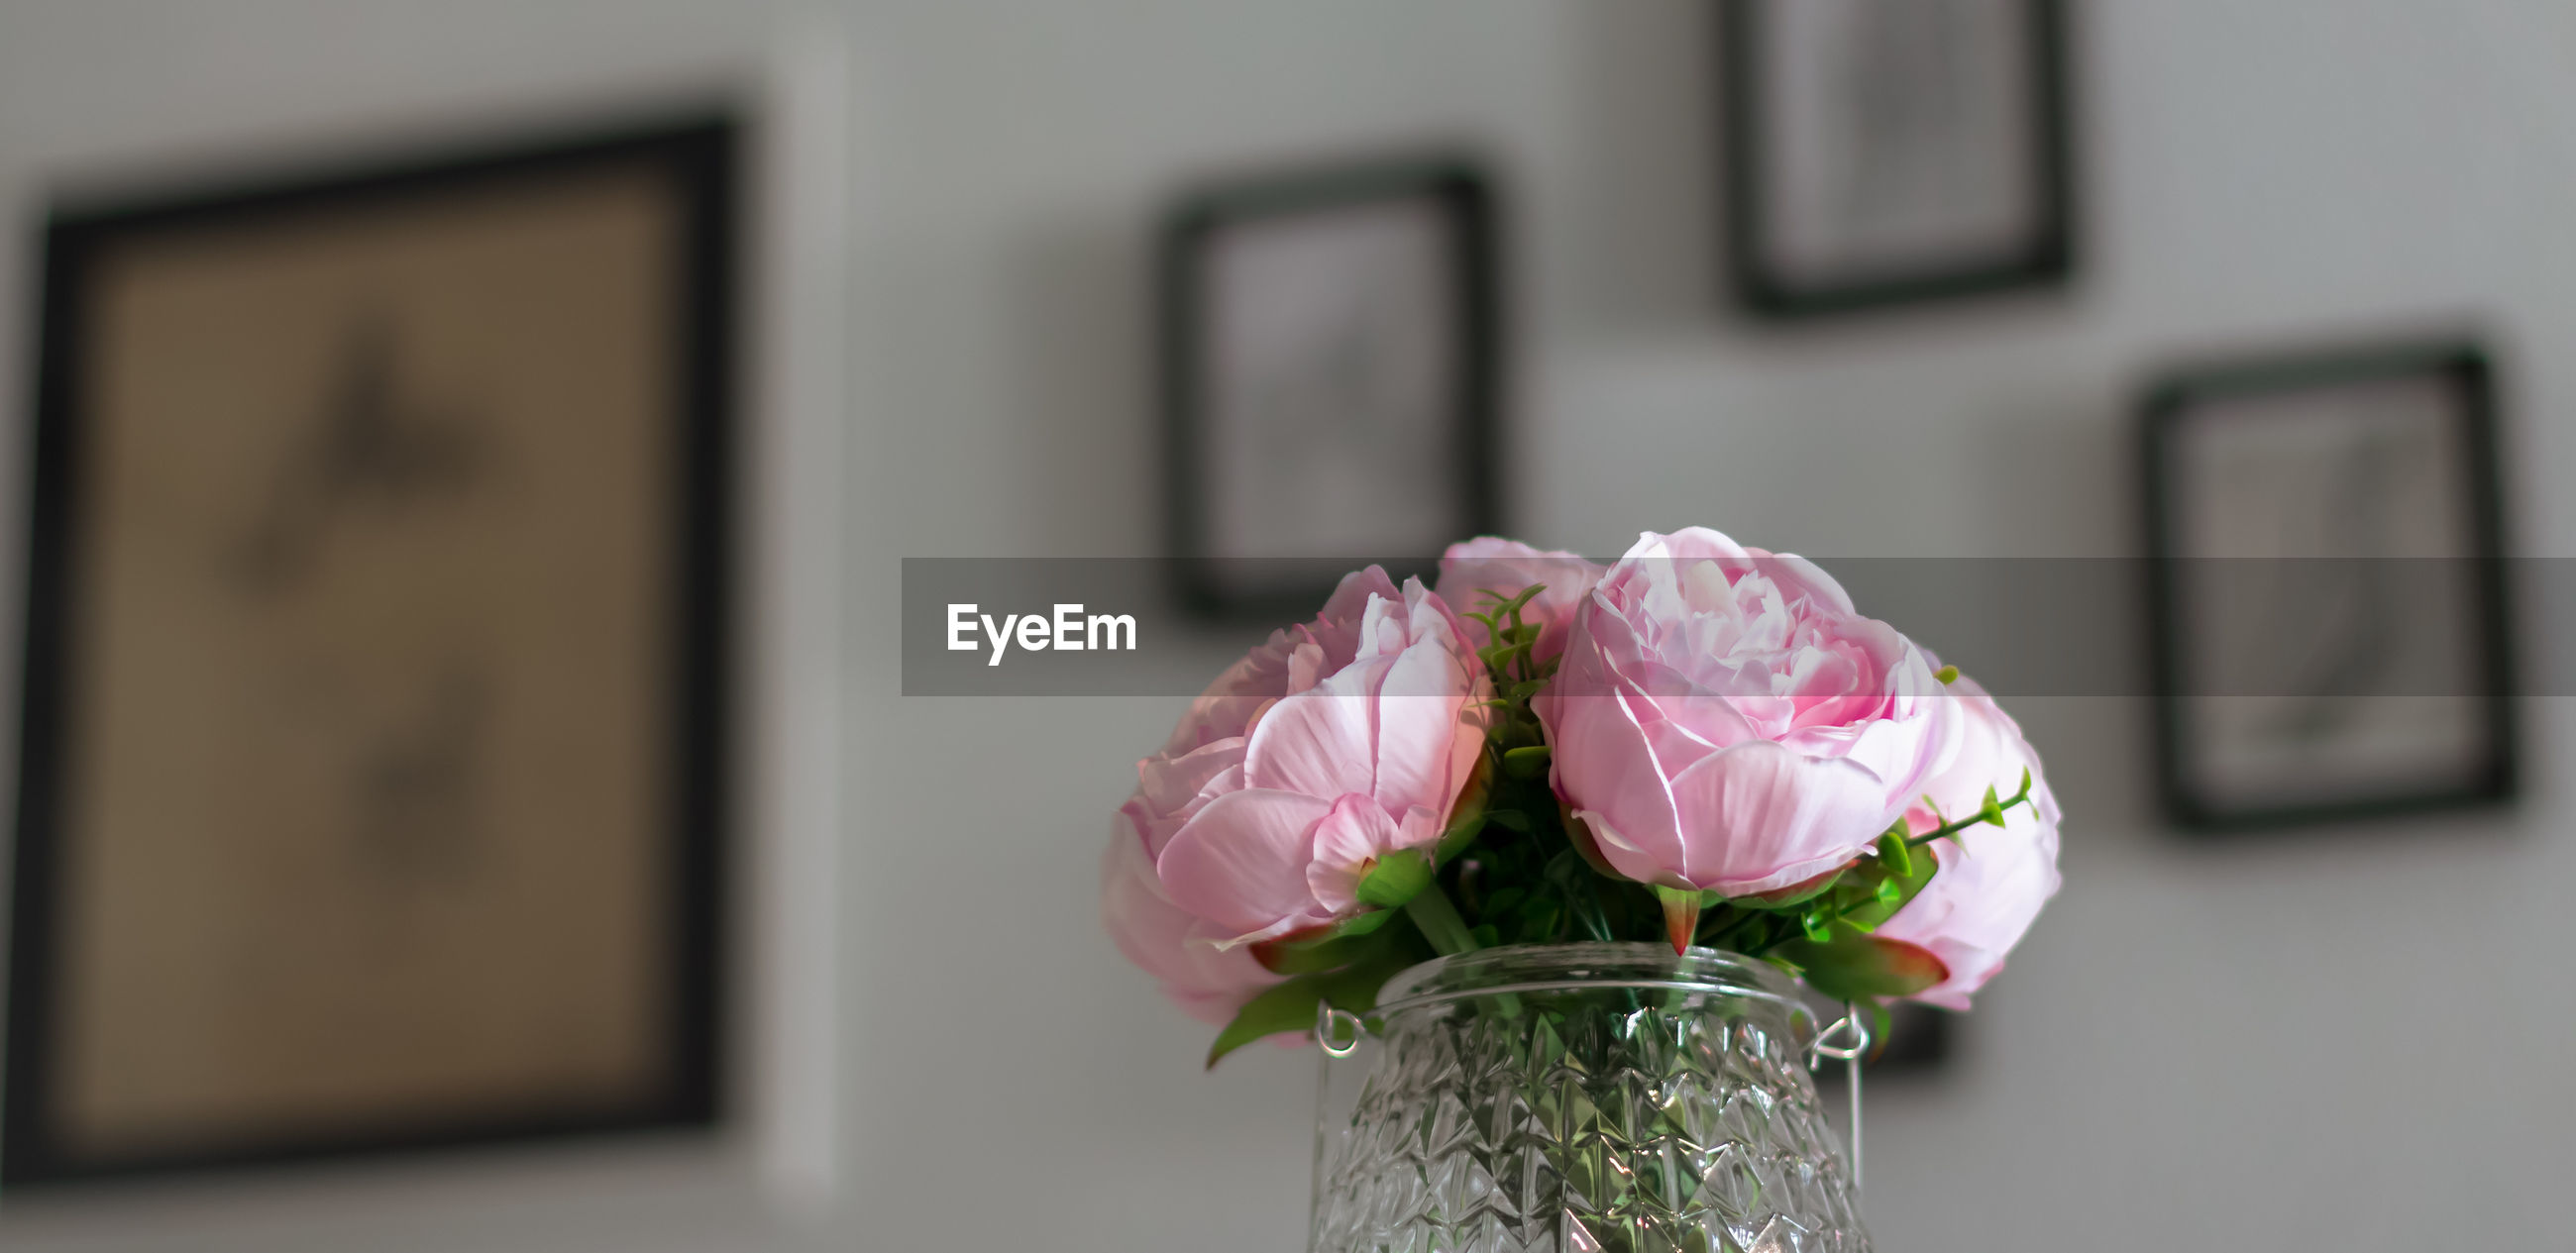 Low level angle of a artificial bouquet of flowers for interiors. slightly warm light over them.